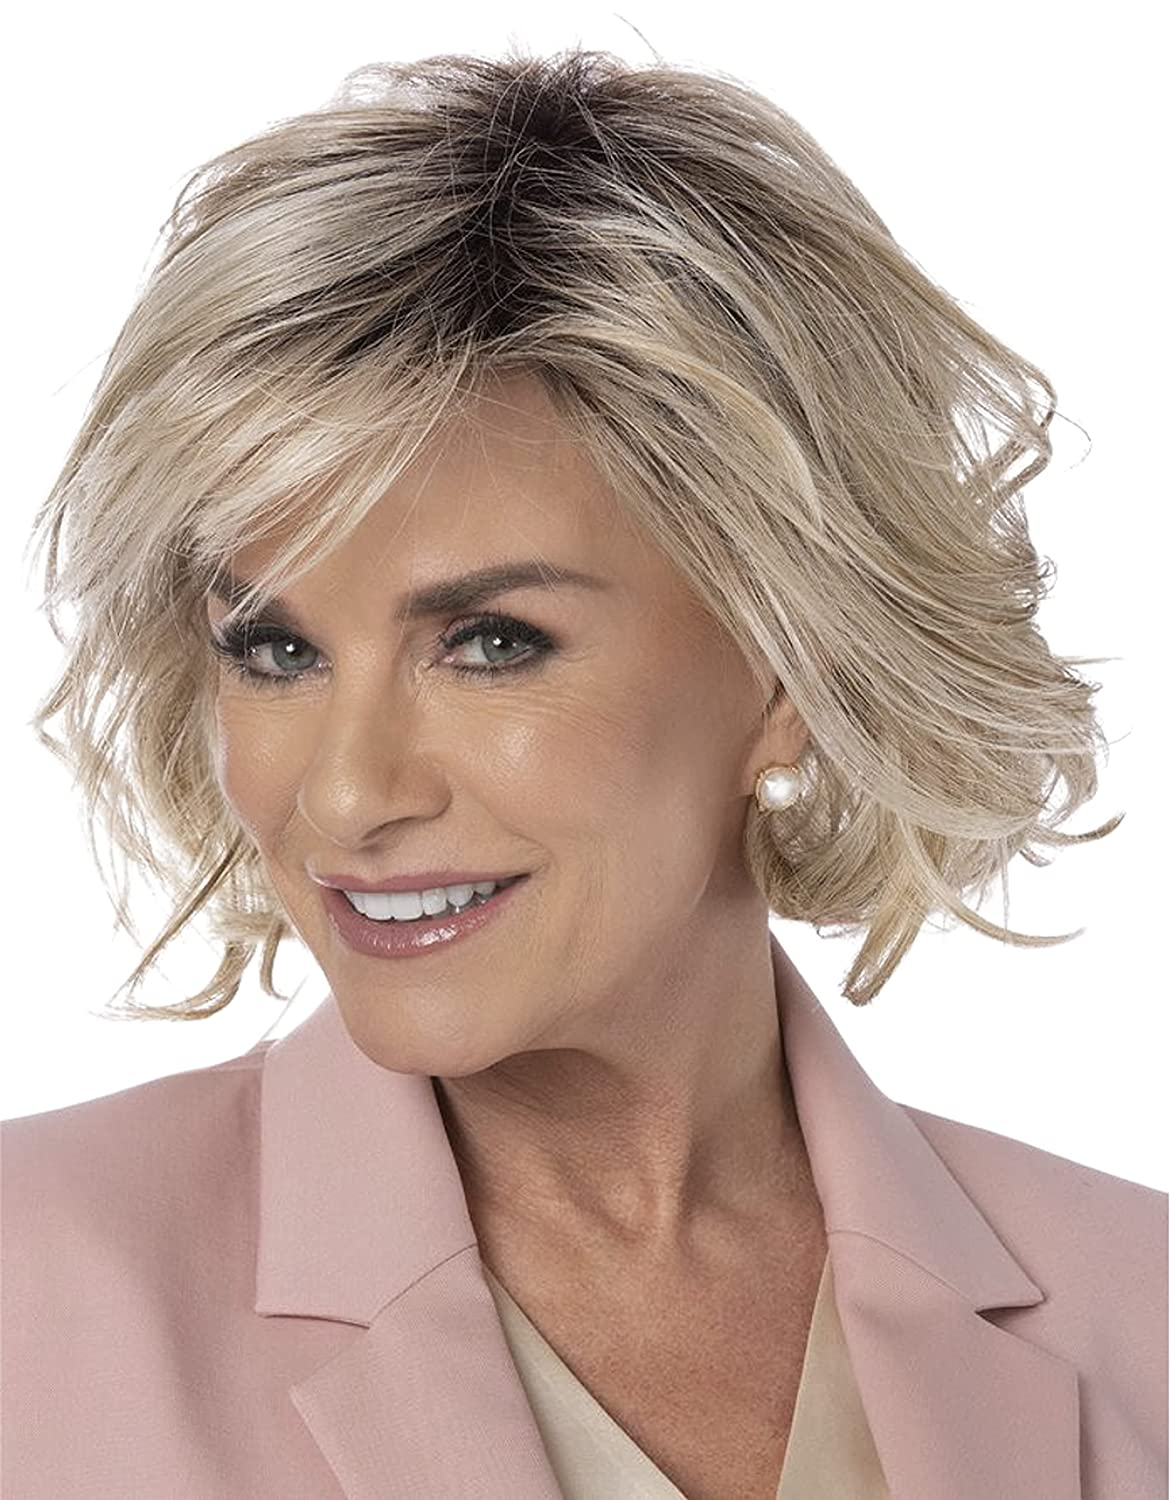 ENTICING LARGE Basic Challenge the lowest price of Japan Cap HF Synthetic B Wig Long Beach Mall 3PC Toni by Brattin